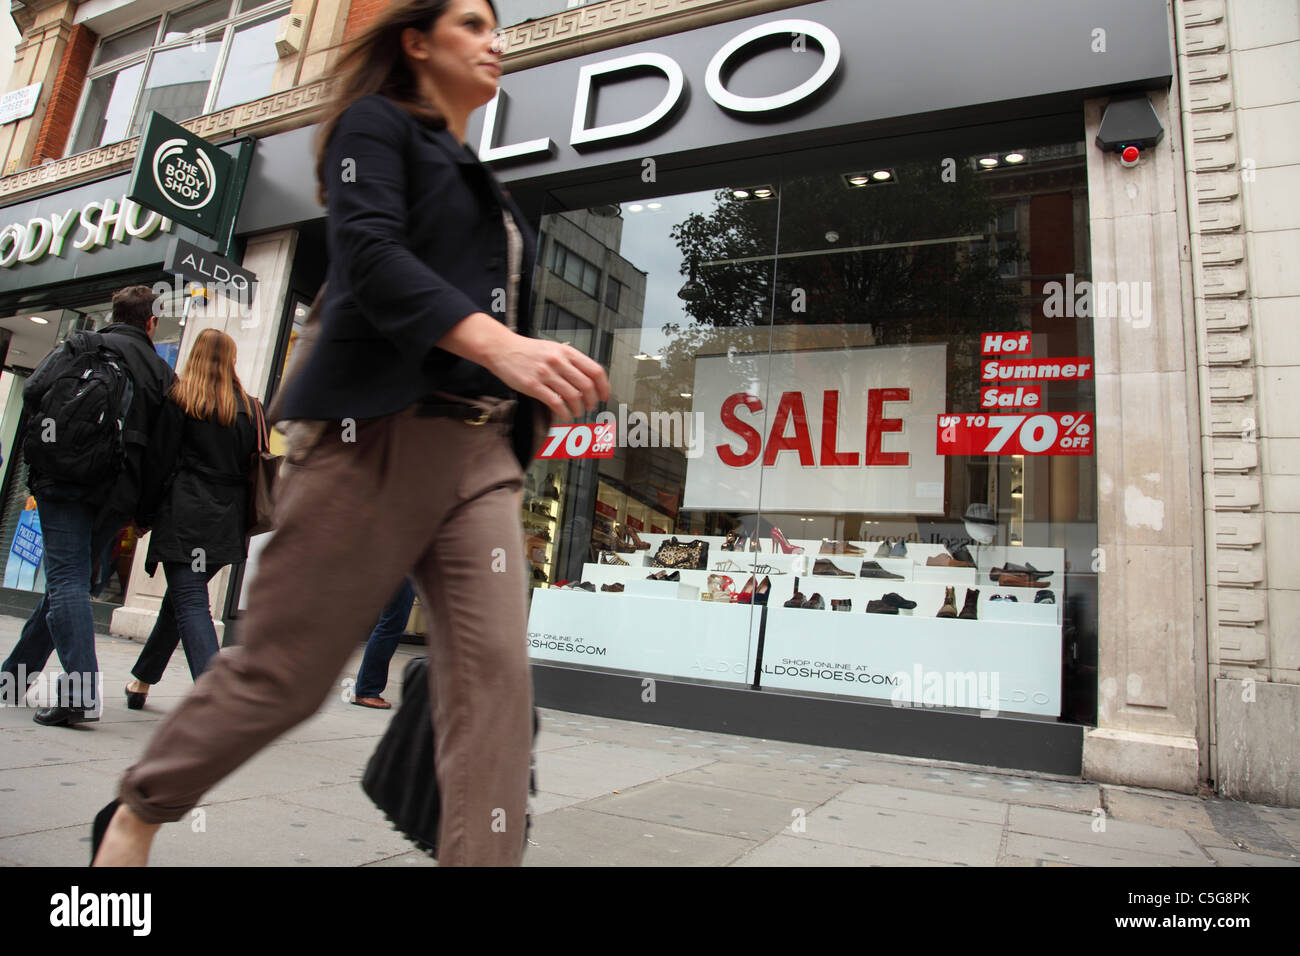 Sales at a store on Oxford Street, London, England, U.K. - Stock Image